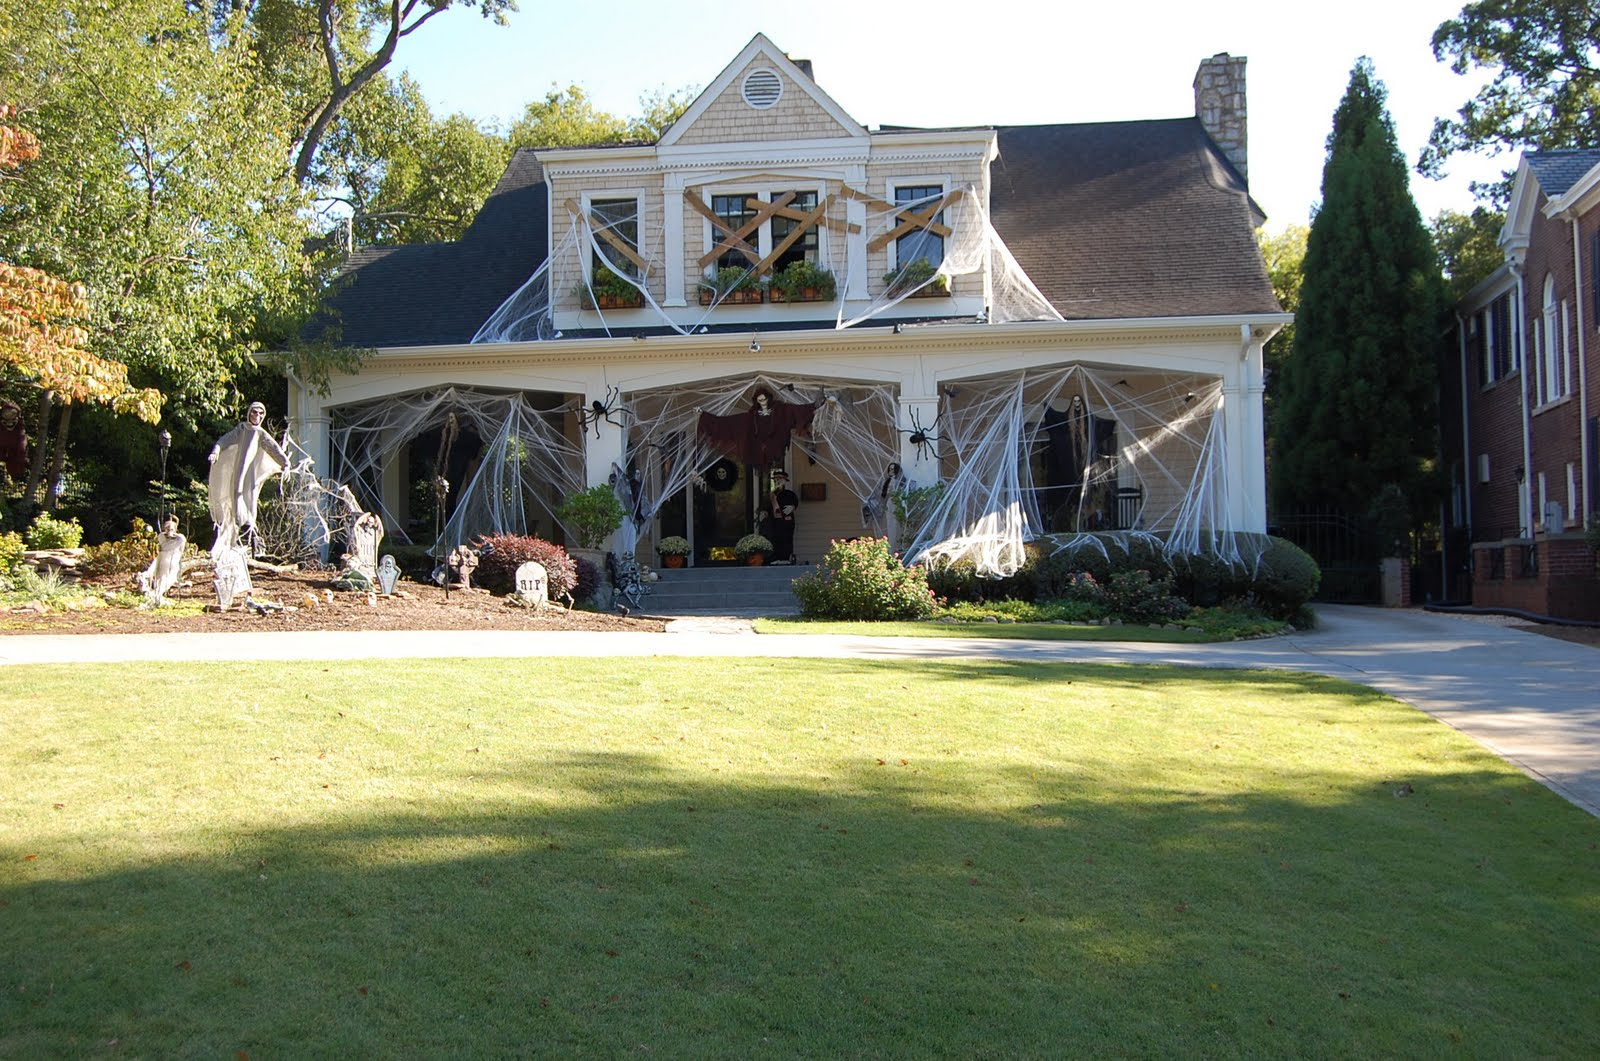 Scary halloween house decorating ideas - Gallery Of Scary Halloween House Decorations